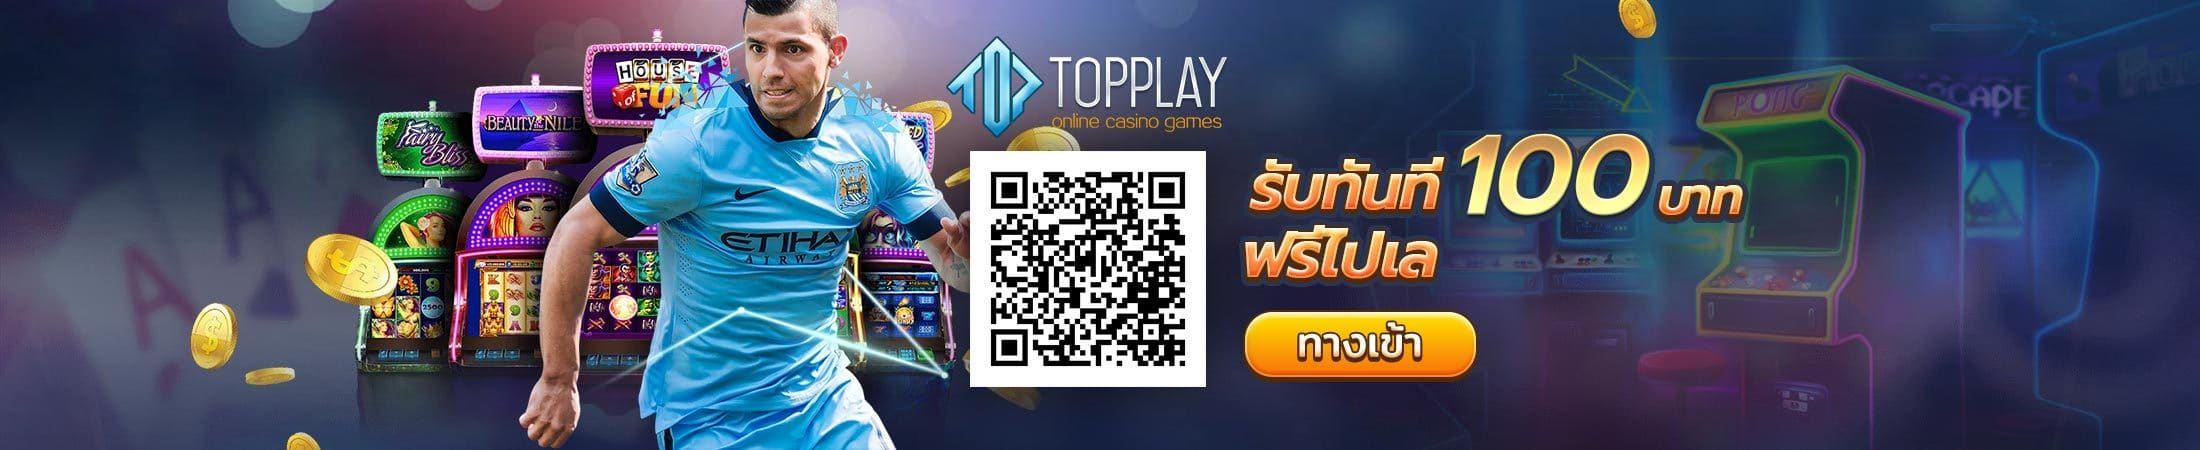 TOPPLAY OFFICIAL SITE